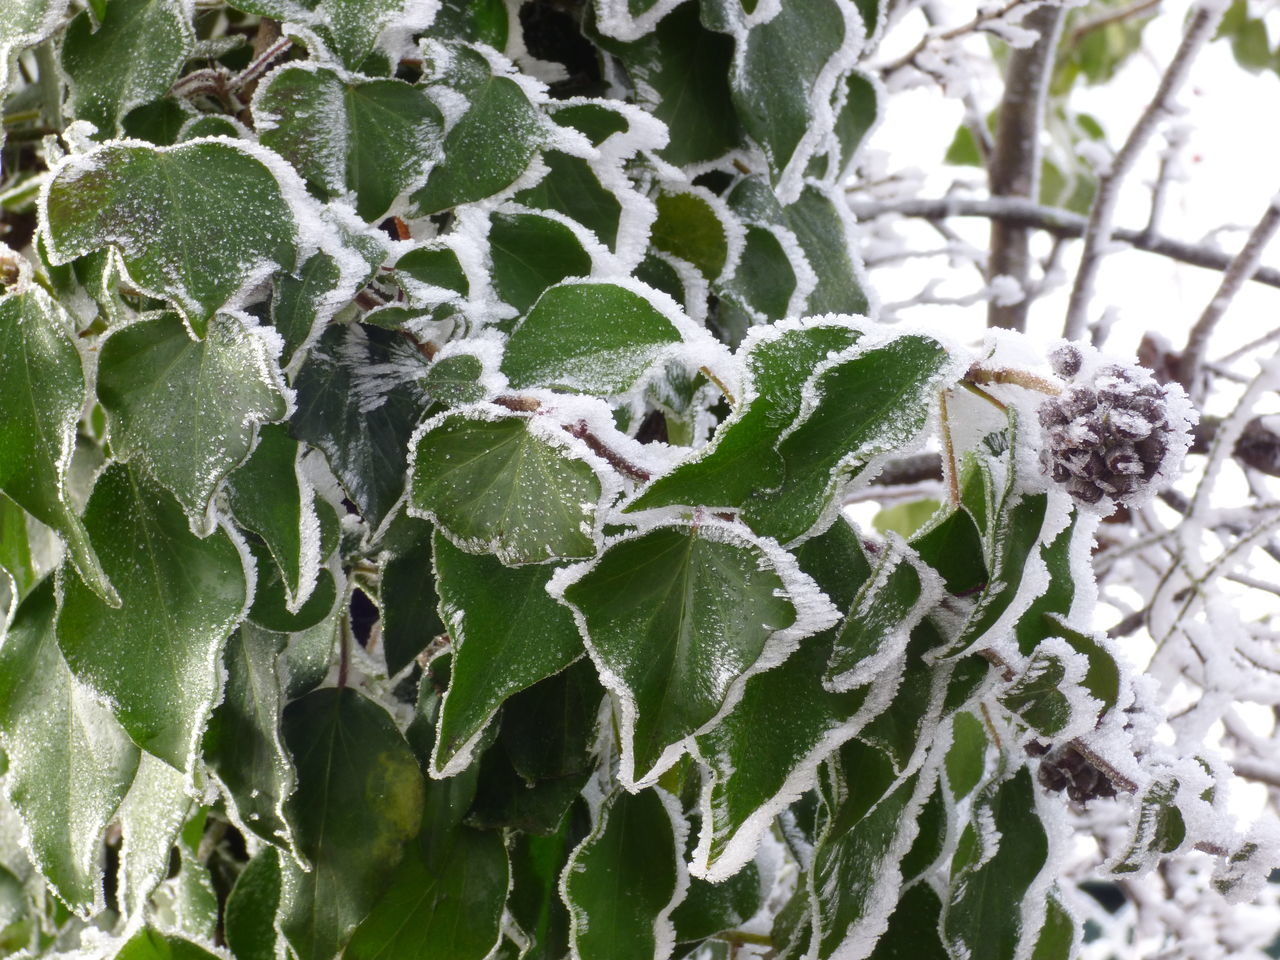 Beauty In Nature Cactus Close-up Day Frosty Leaves Green Color Growth Leaf Nature No People Outdoors Plant Tree